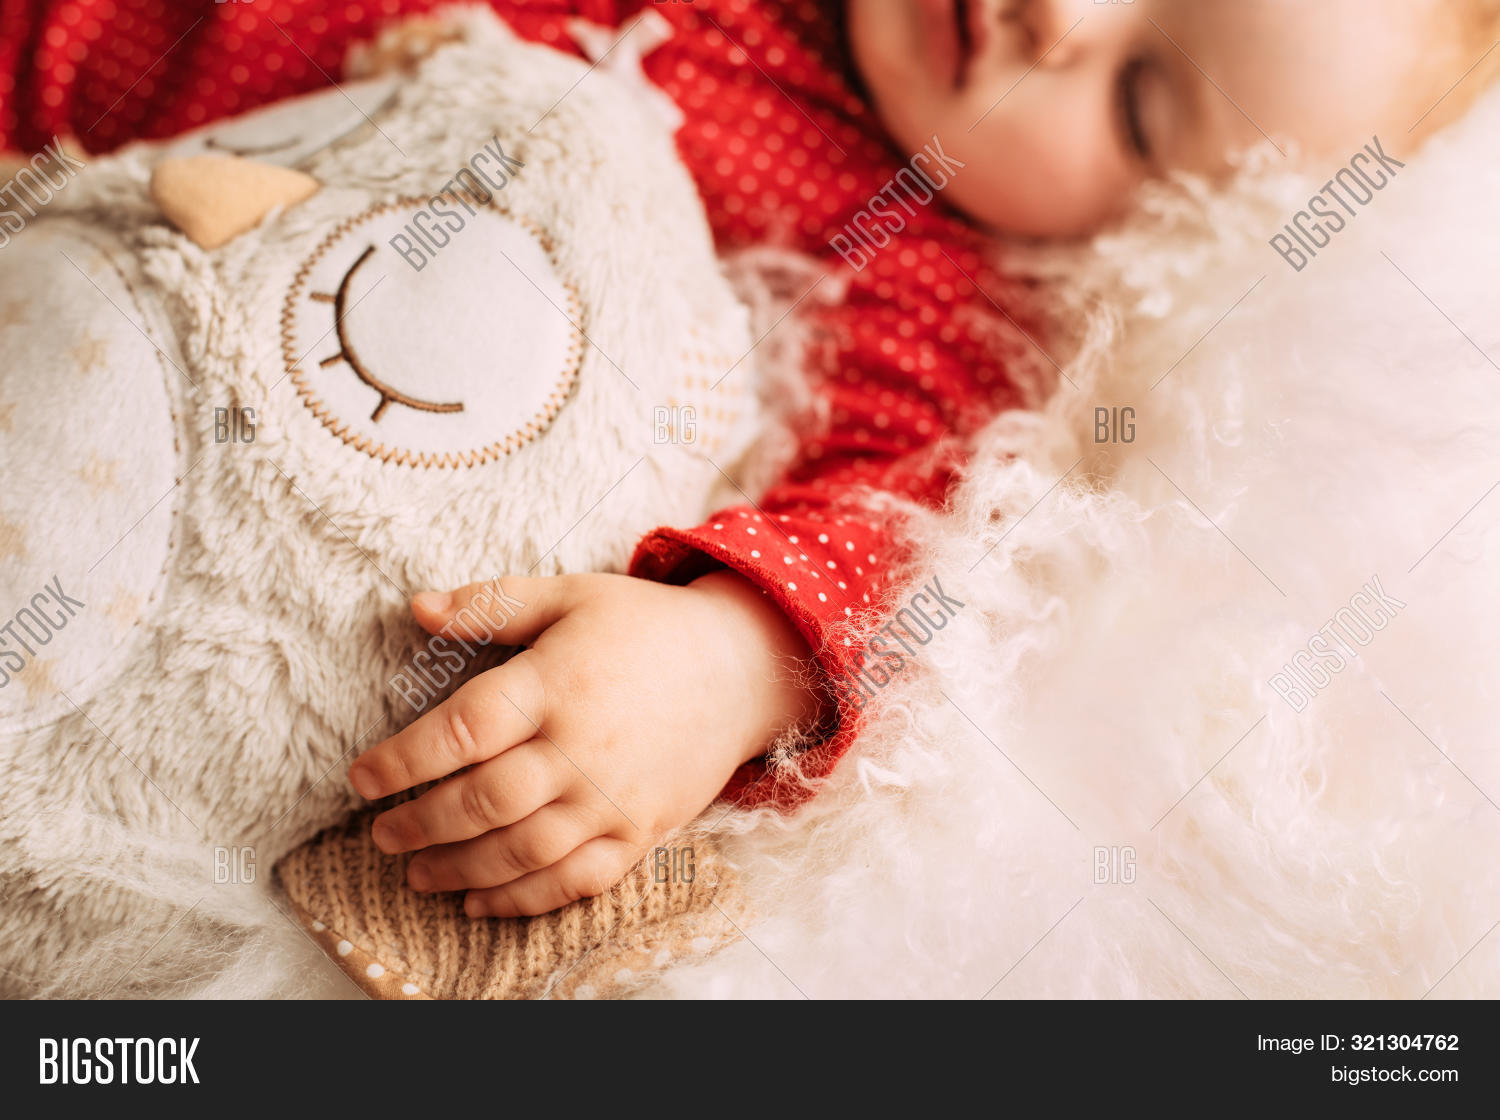 Cute Little Baby Girl Image Photo Free Trial Bigstock